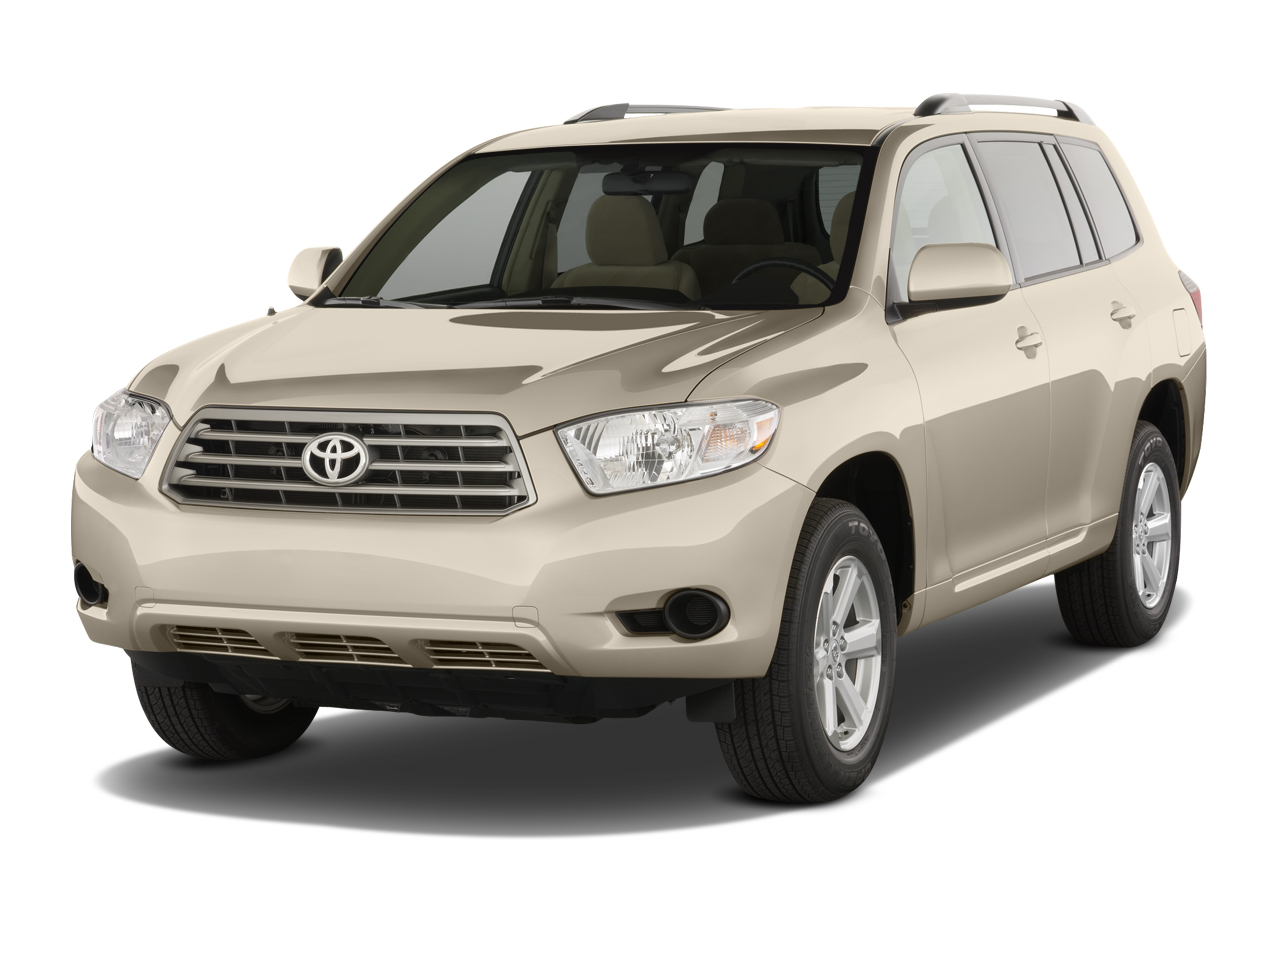 2010 toyota highlander review ratings specs prices and photos the car connection. Black Bedroom Furniture Sets. Home Design Ideas